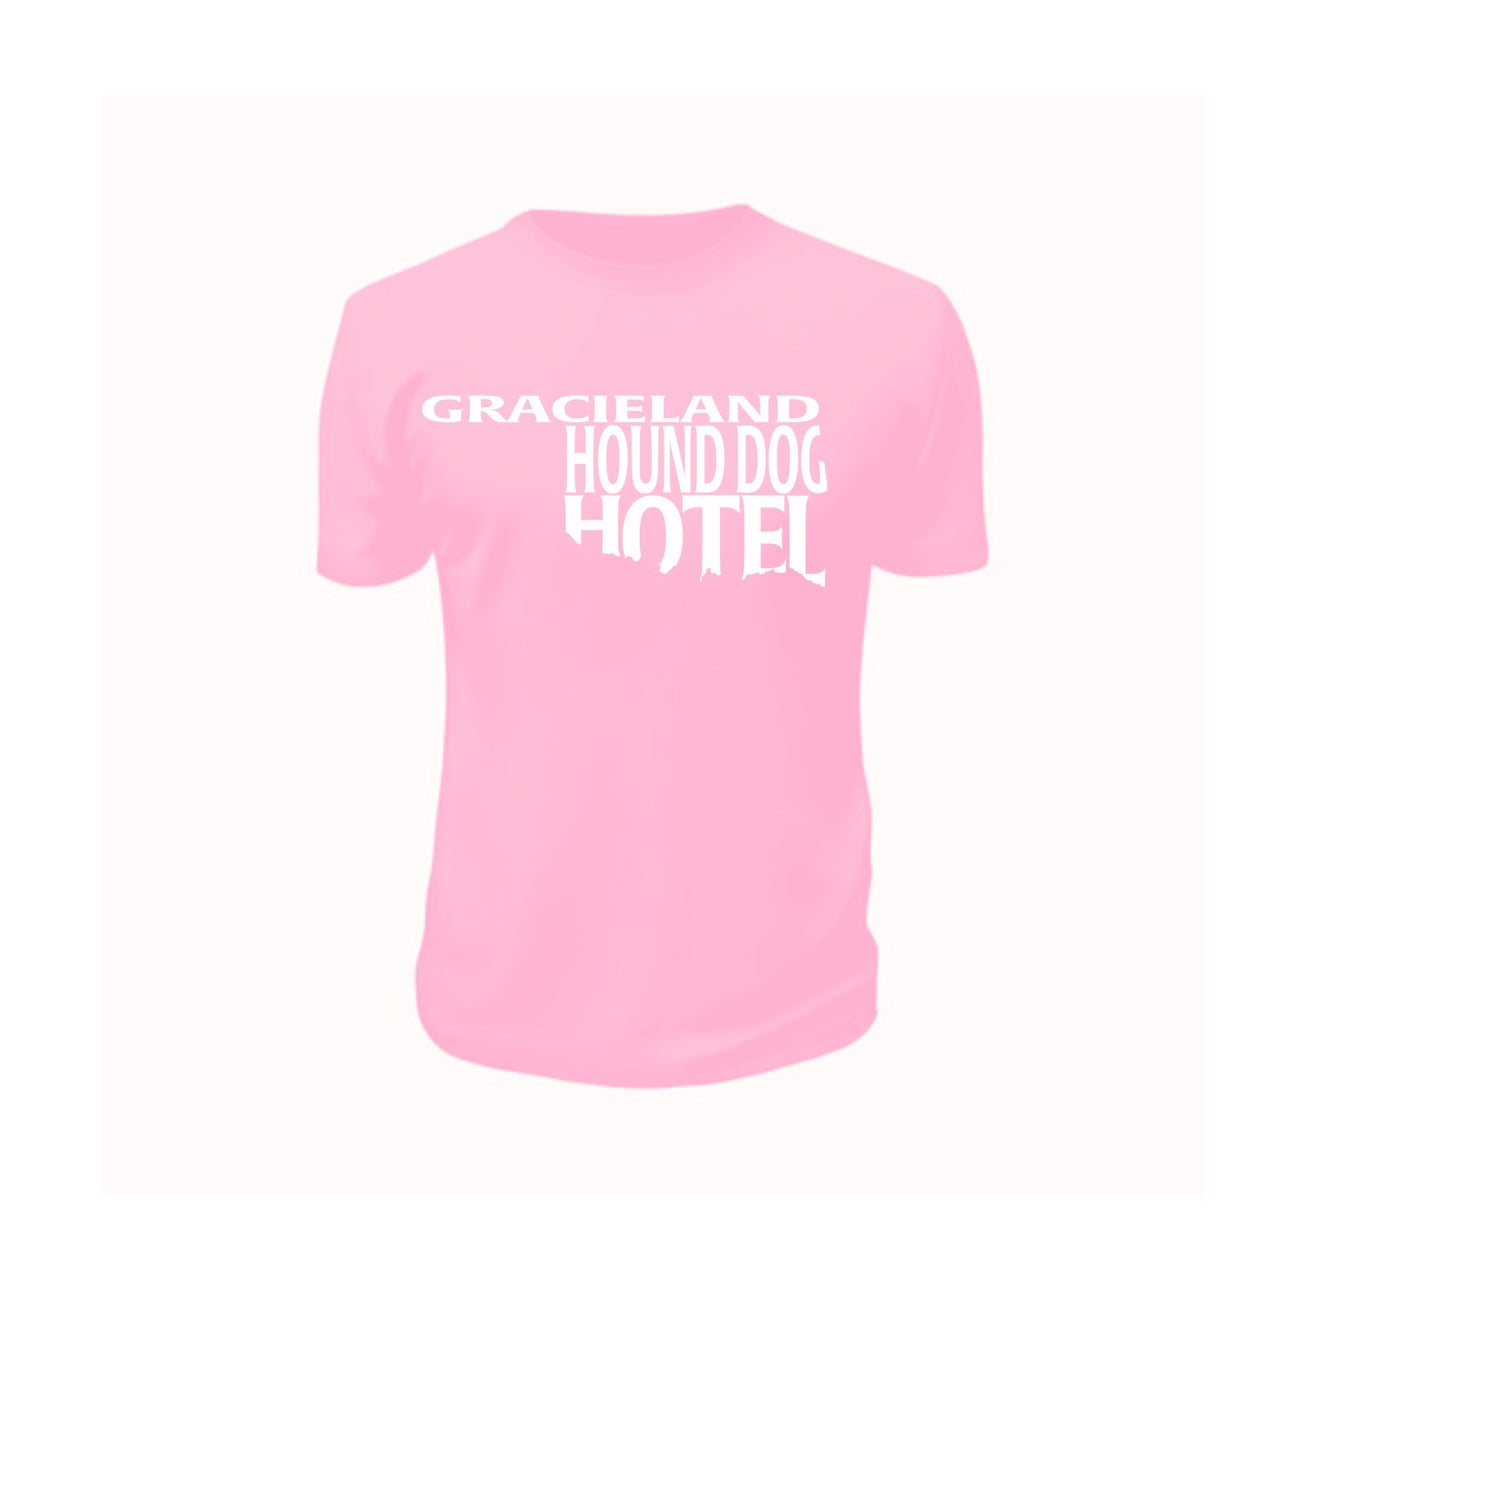 Image of Pink Gracieland Tshirt with White text